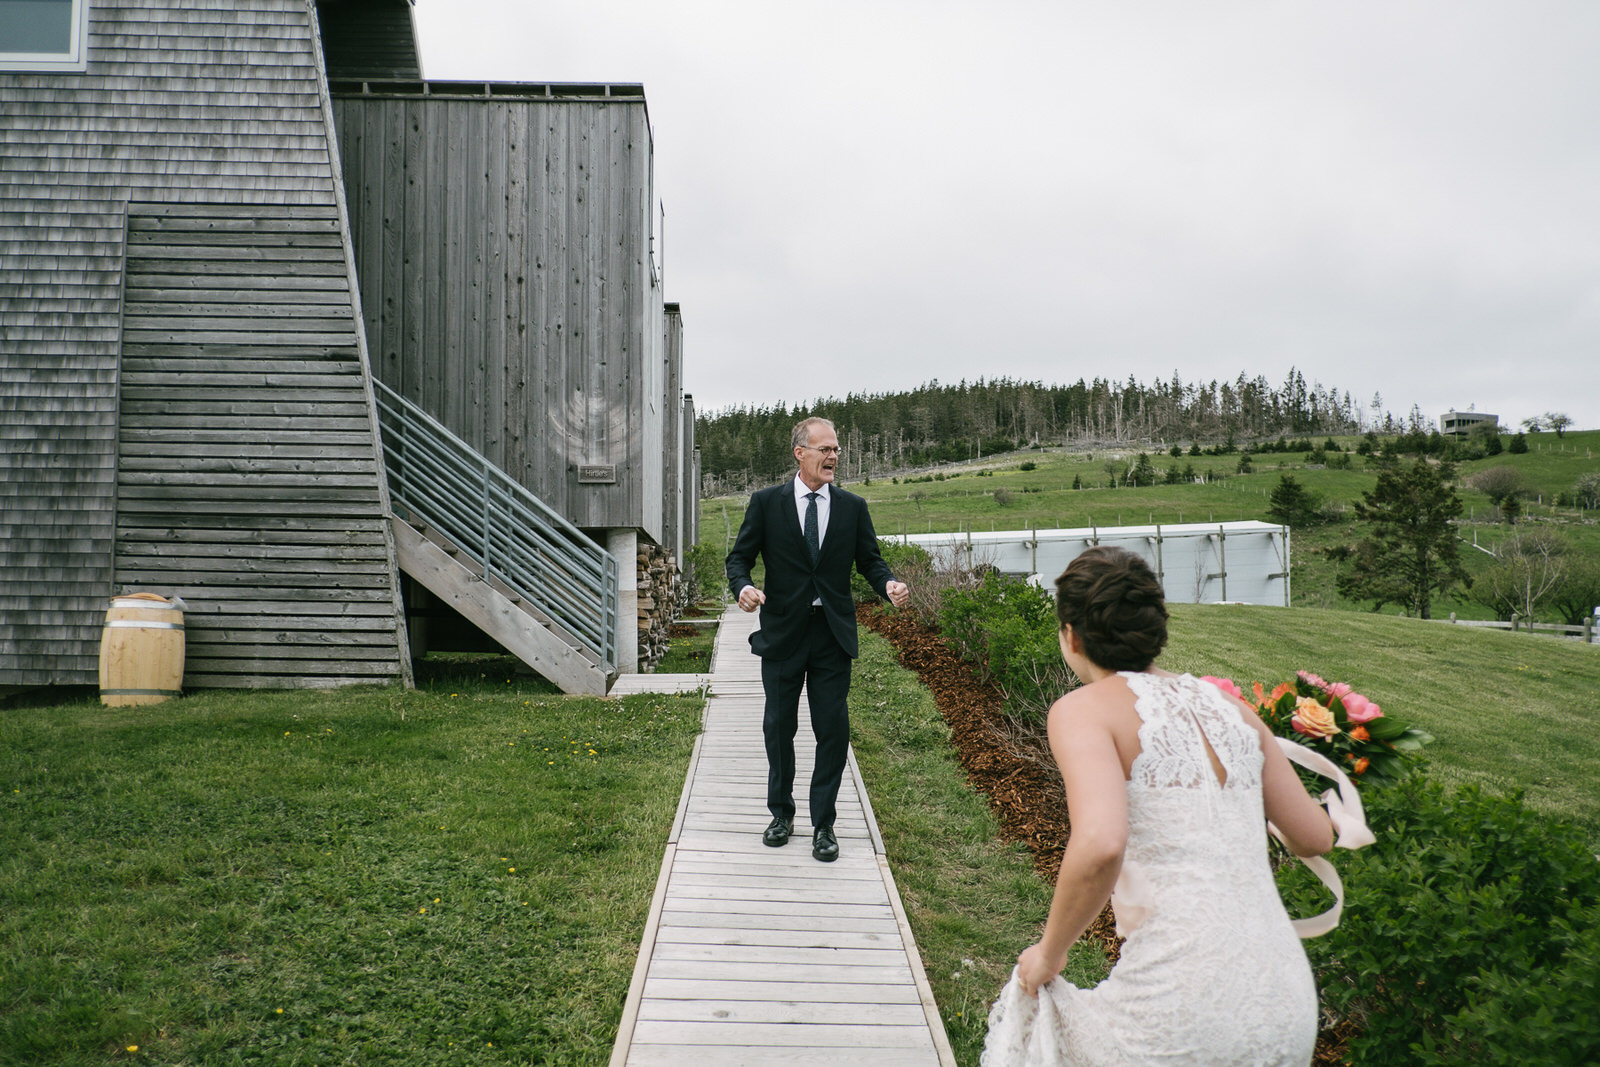 A late spring wedding at Shobac in Lunenburg County, Nova Scotia.